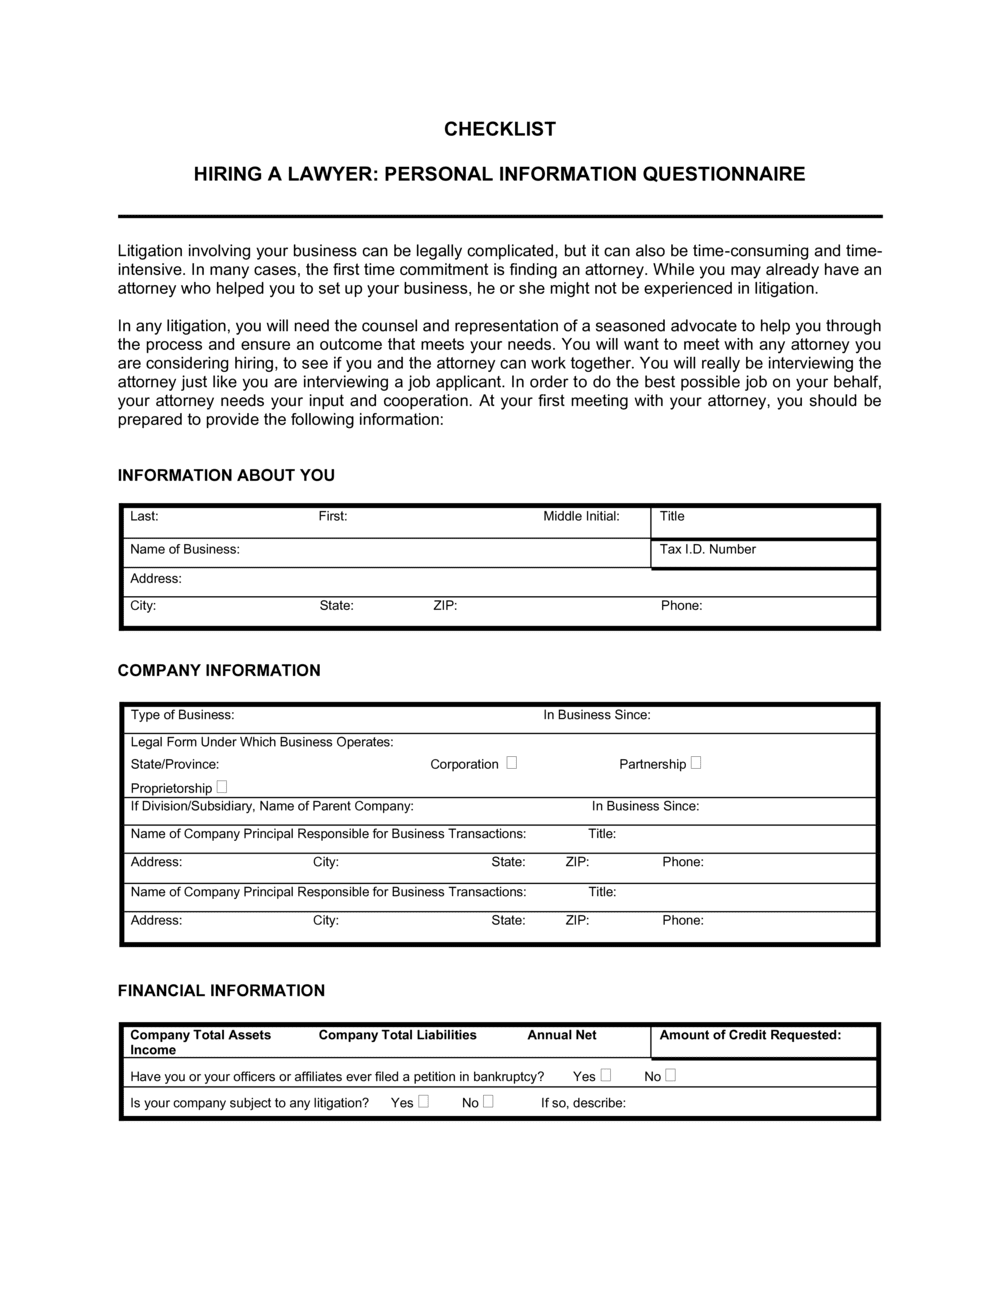 Business-in-a-Box's Checklist Questionnaire For Hiring a Lawyer Template